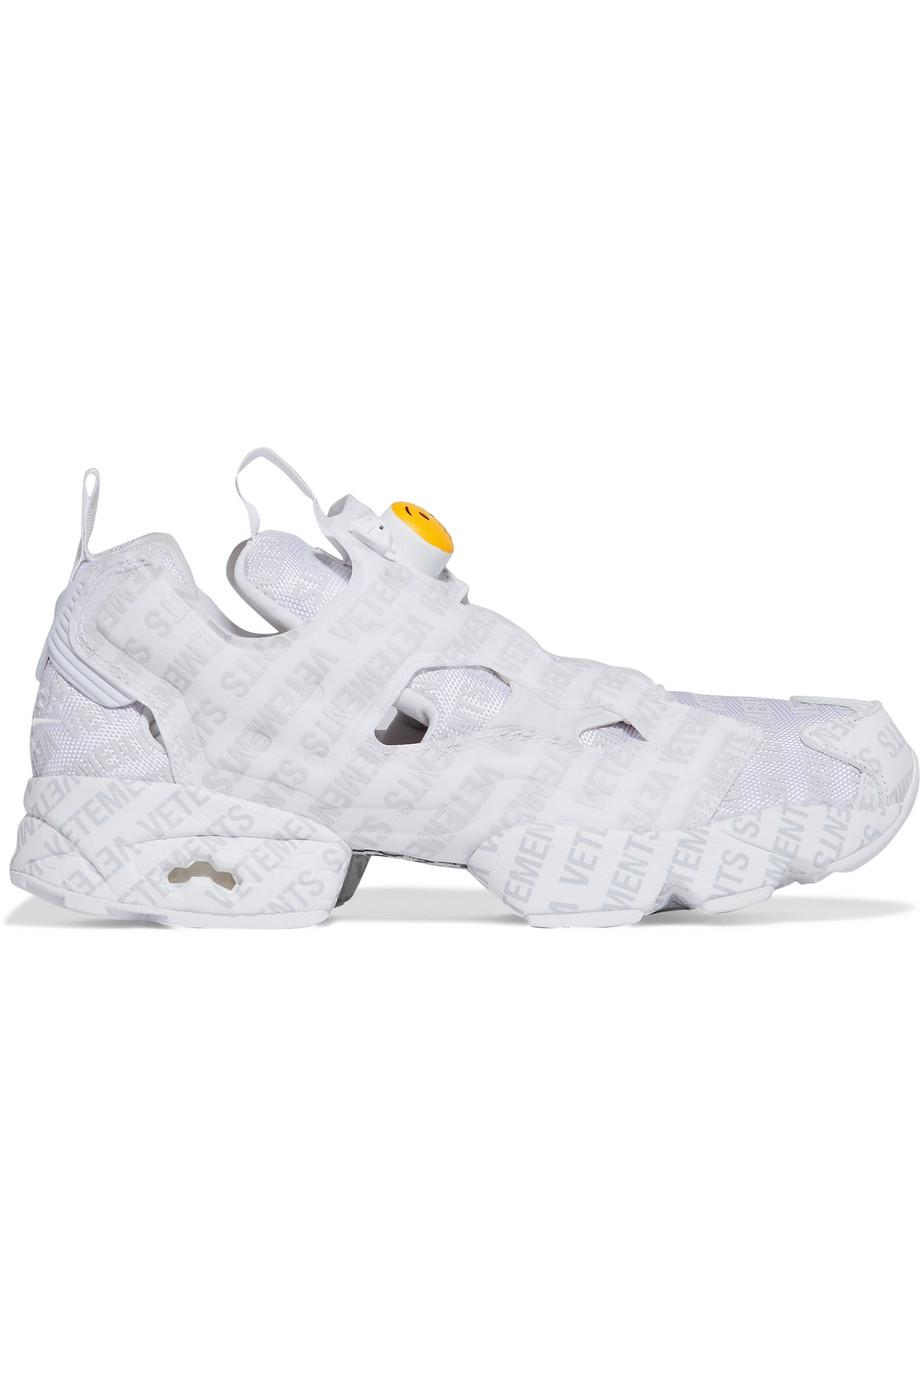 7ba518c3e98 Lyst - Vetements + Reebok Instapump Fury Emoji Printed Leather And ...